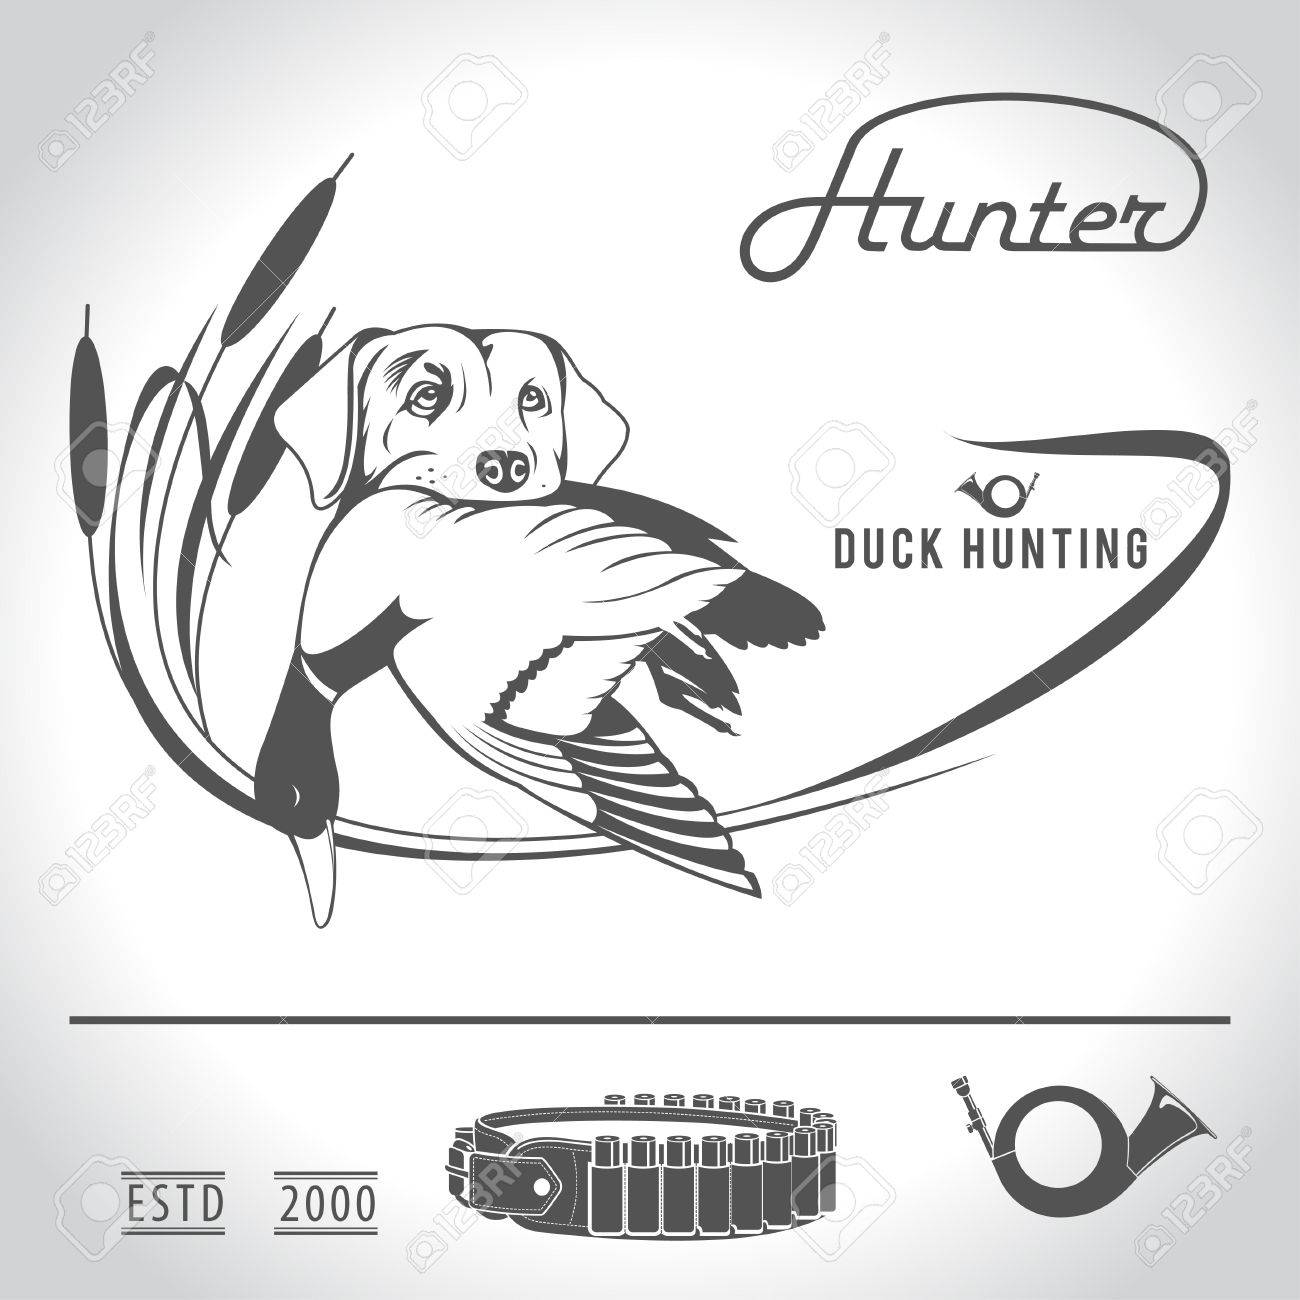 Hunting logo hunting dog with a wild duck in his teeth and design elements. The outfit of the hunter. - 60501031